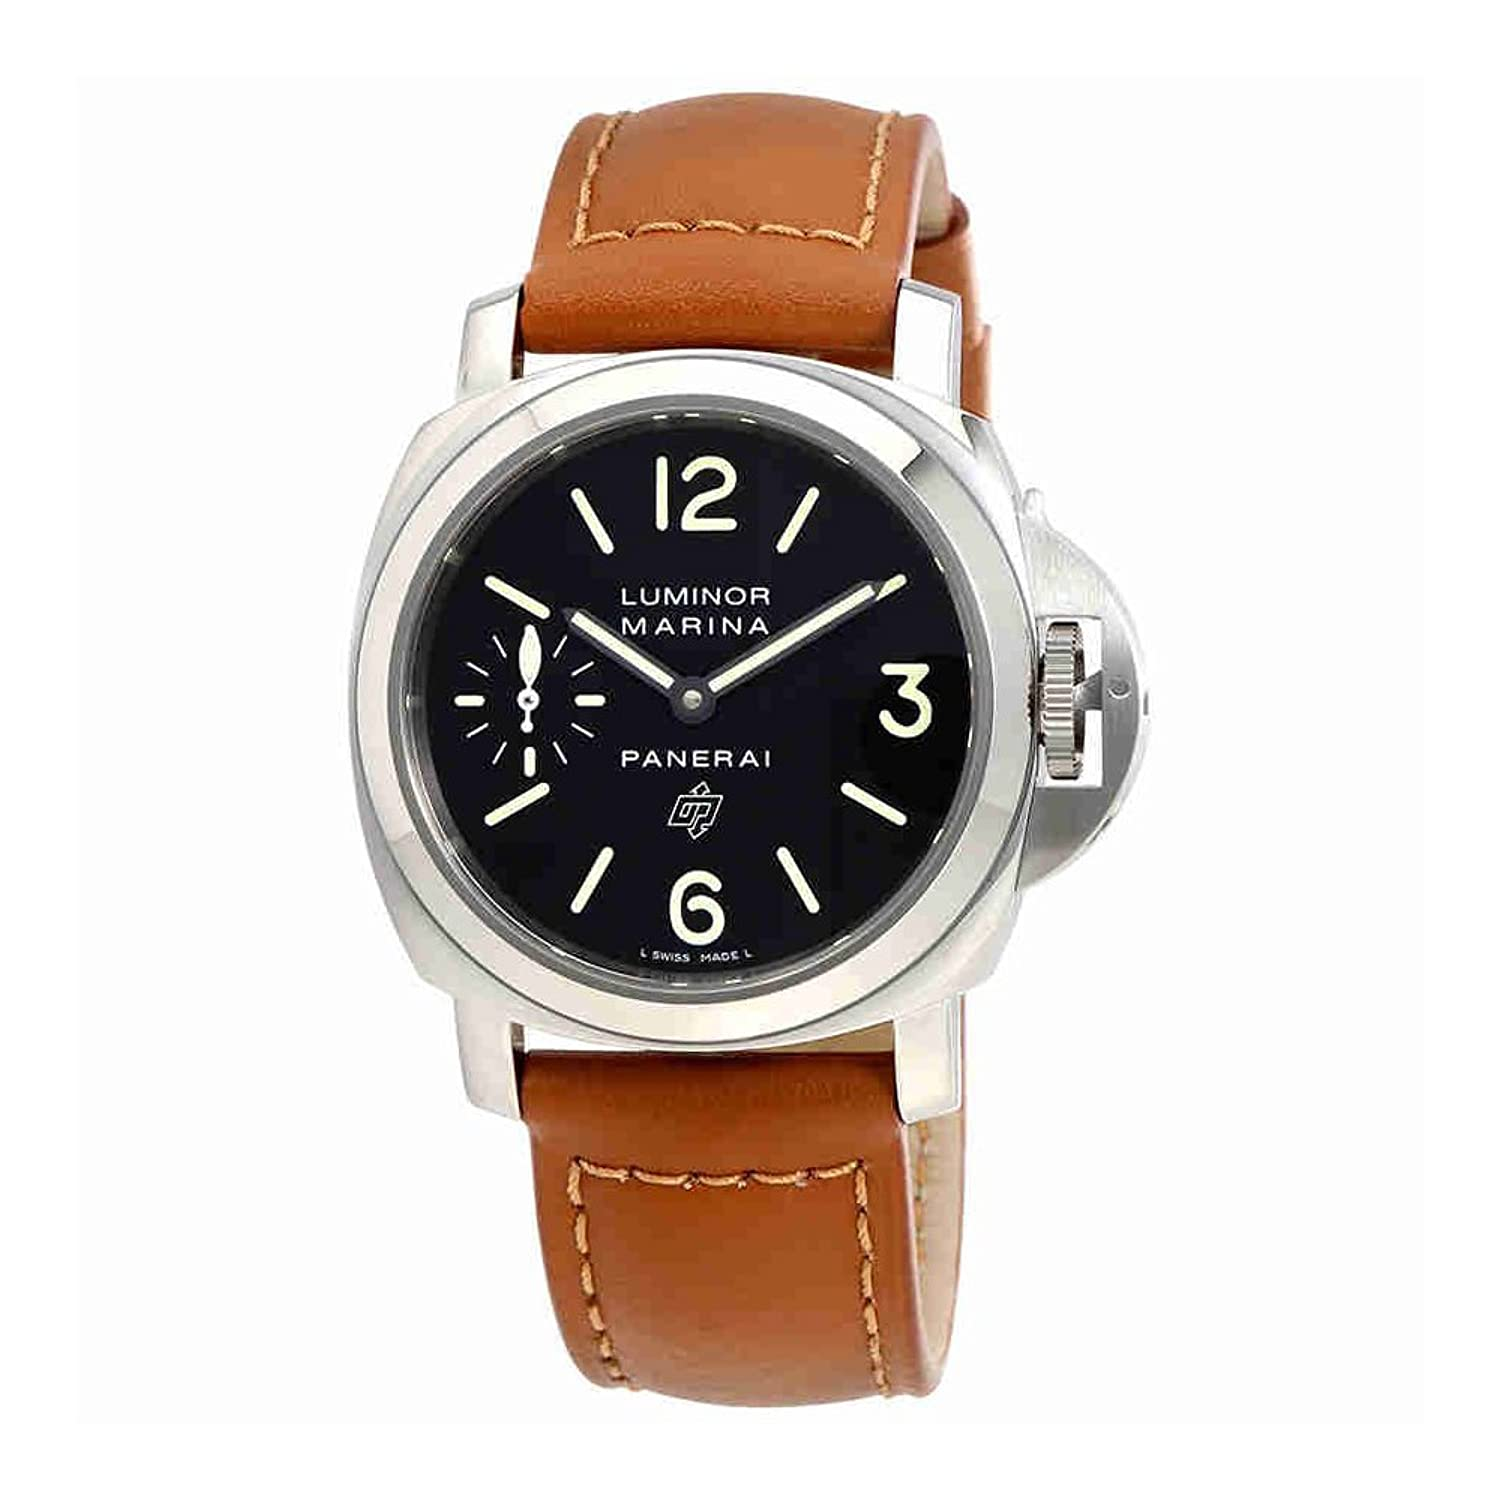 Panerai Swiss Watches: Overview, Features, Views and Reviews 4